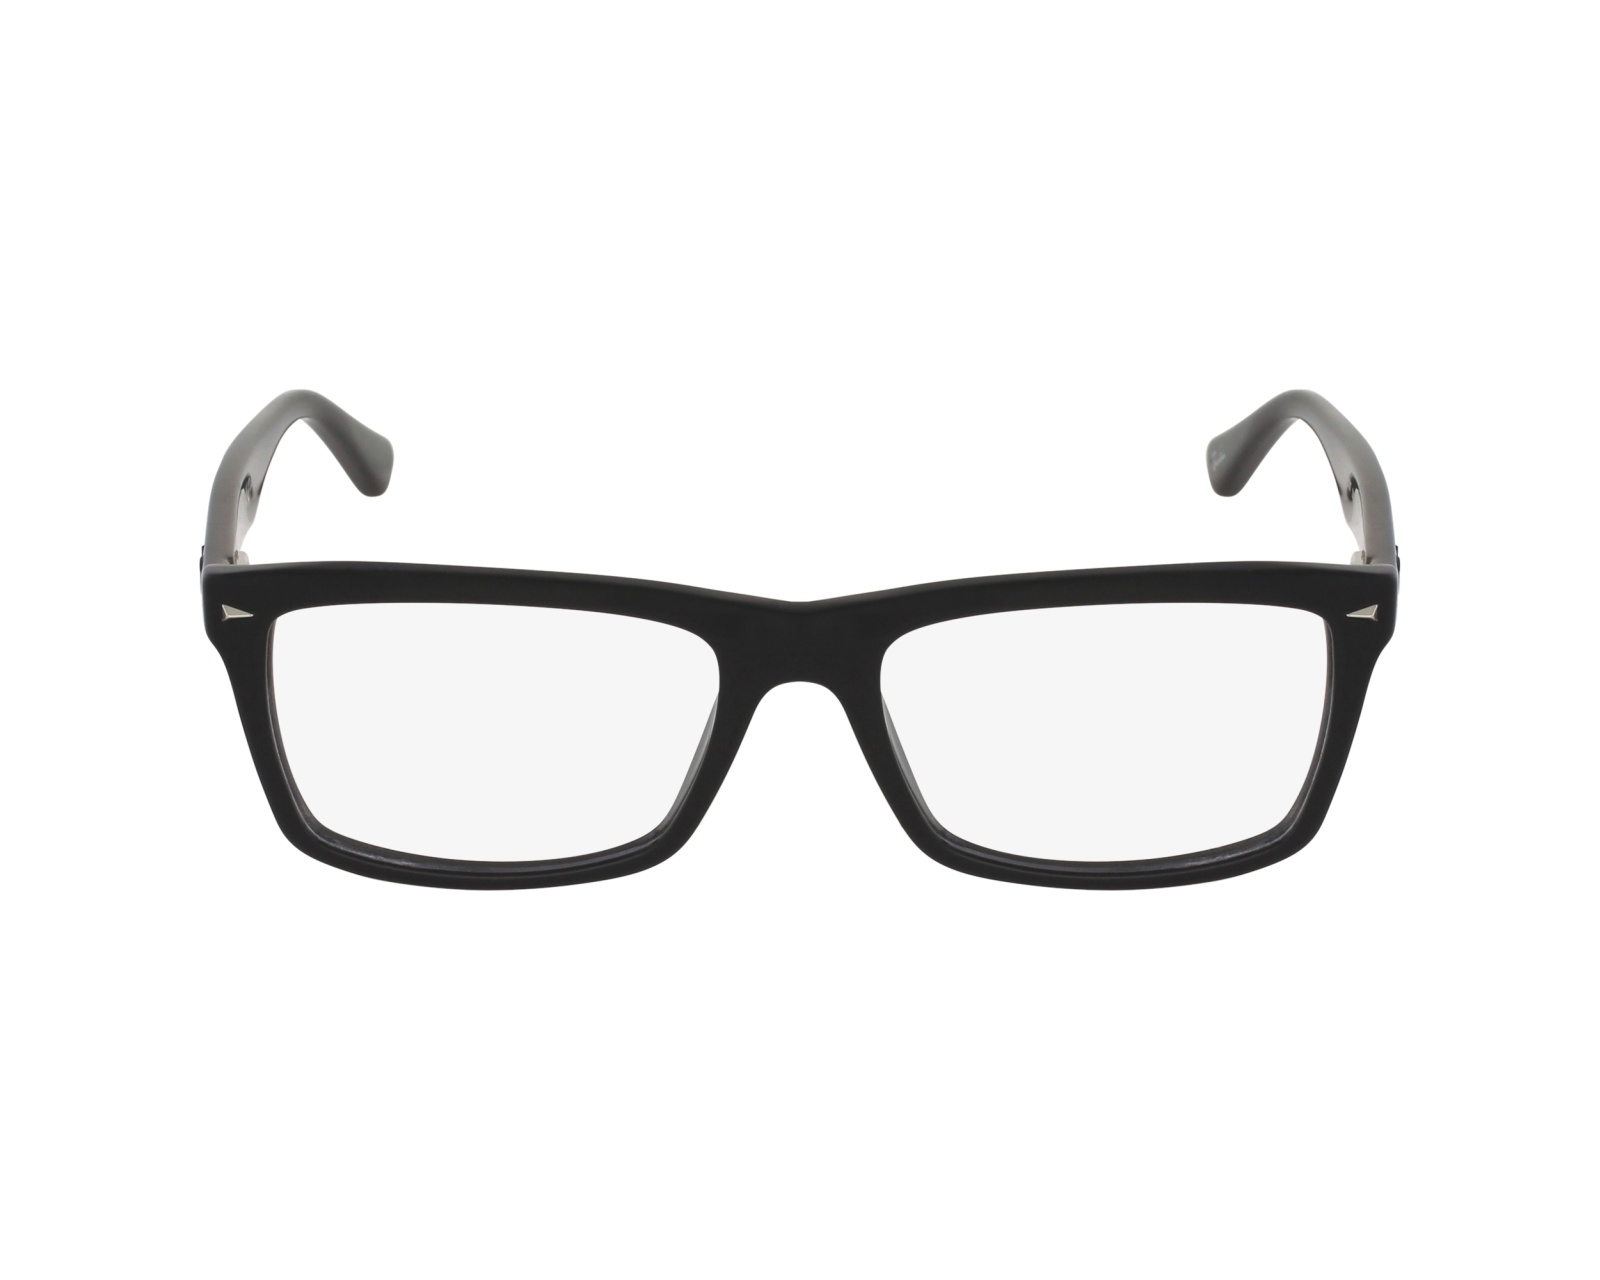 b45f7fde8a0 eyeglasses Ray-Ban RX-5287 2000 52-18 Black profile view